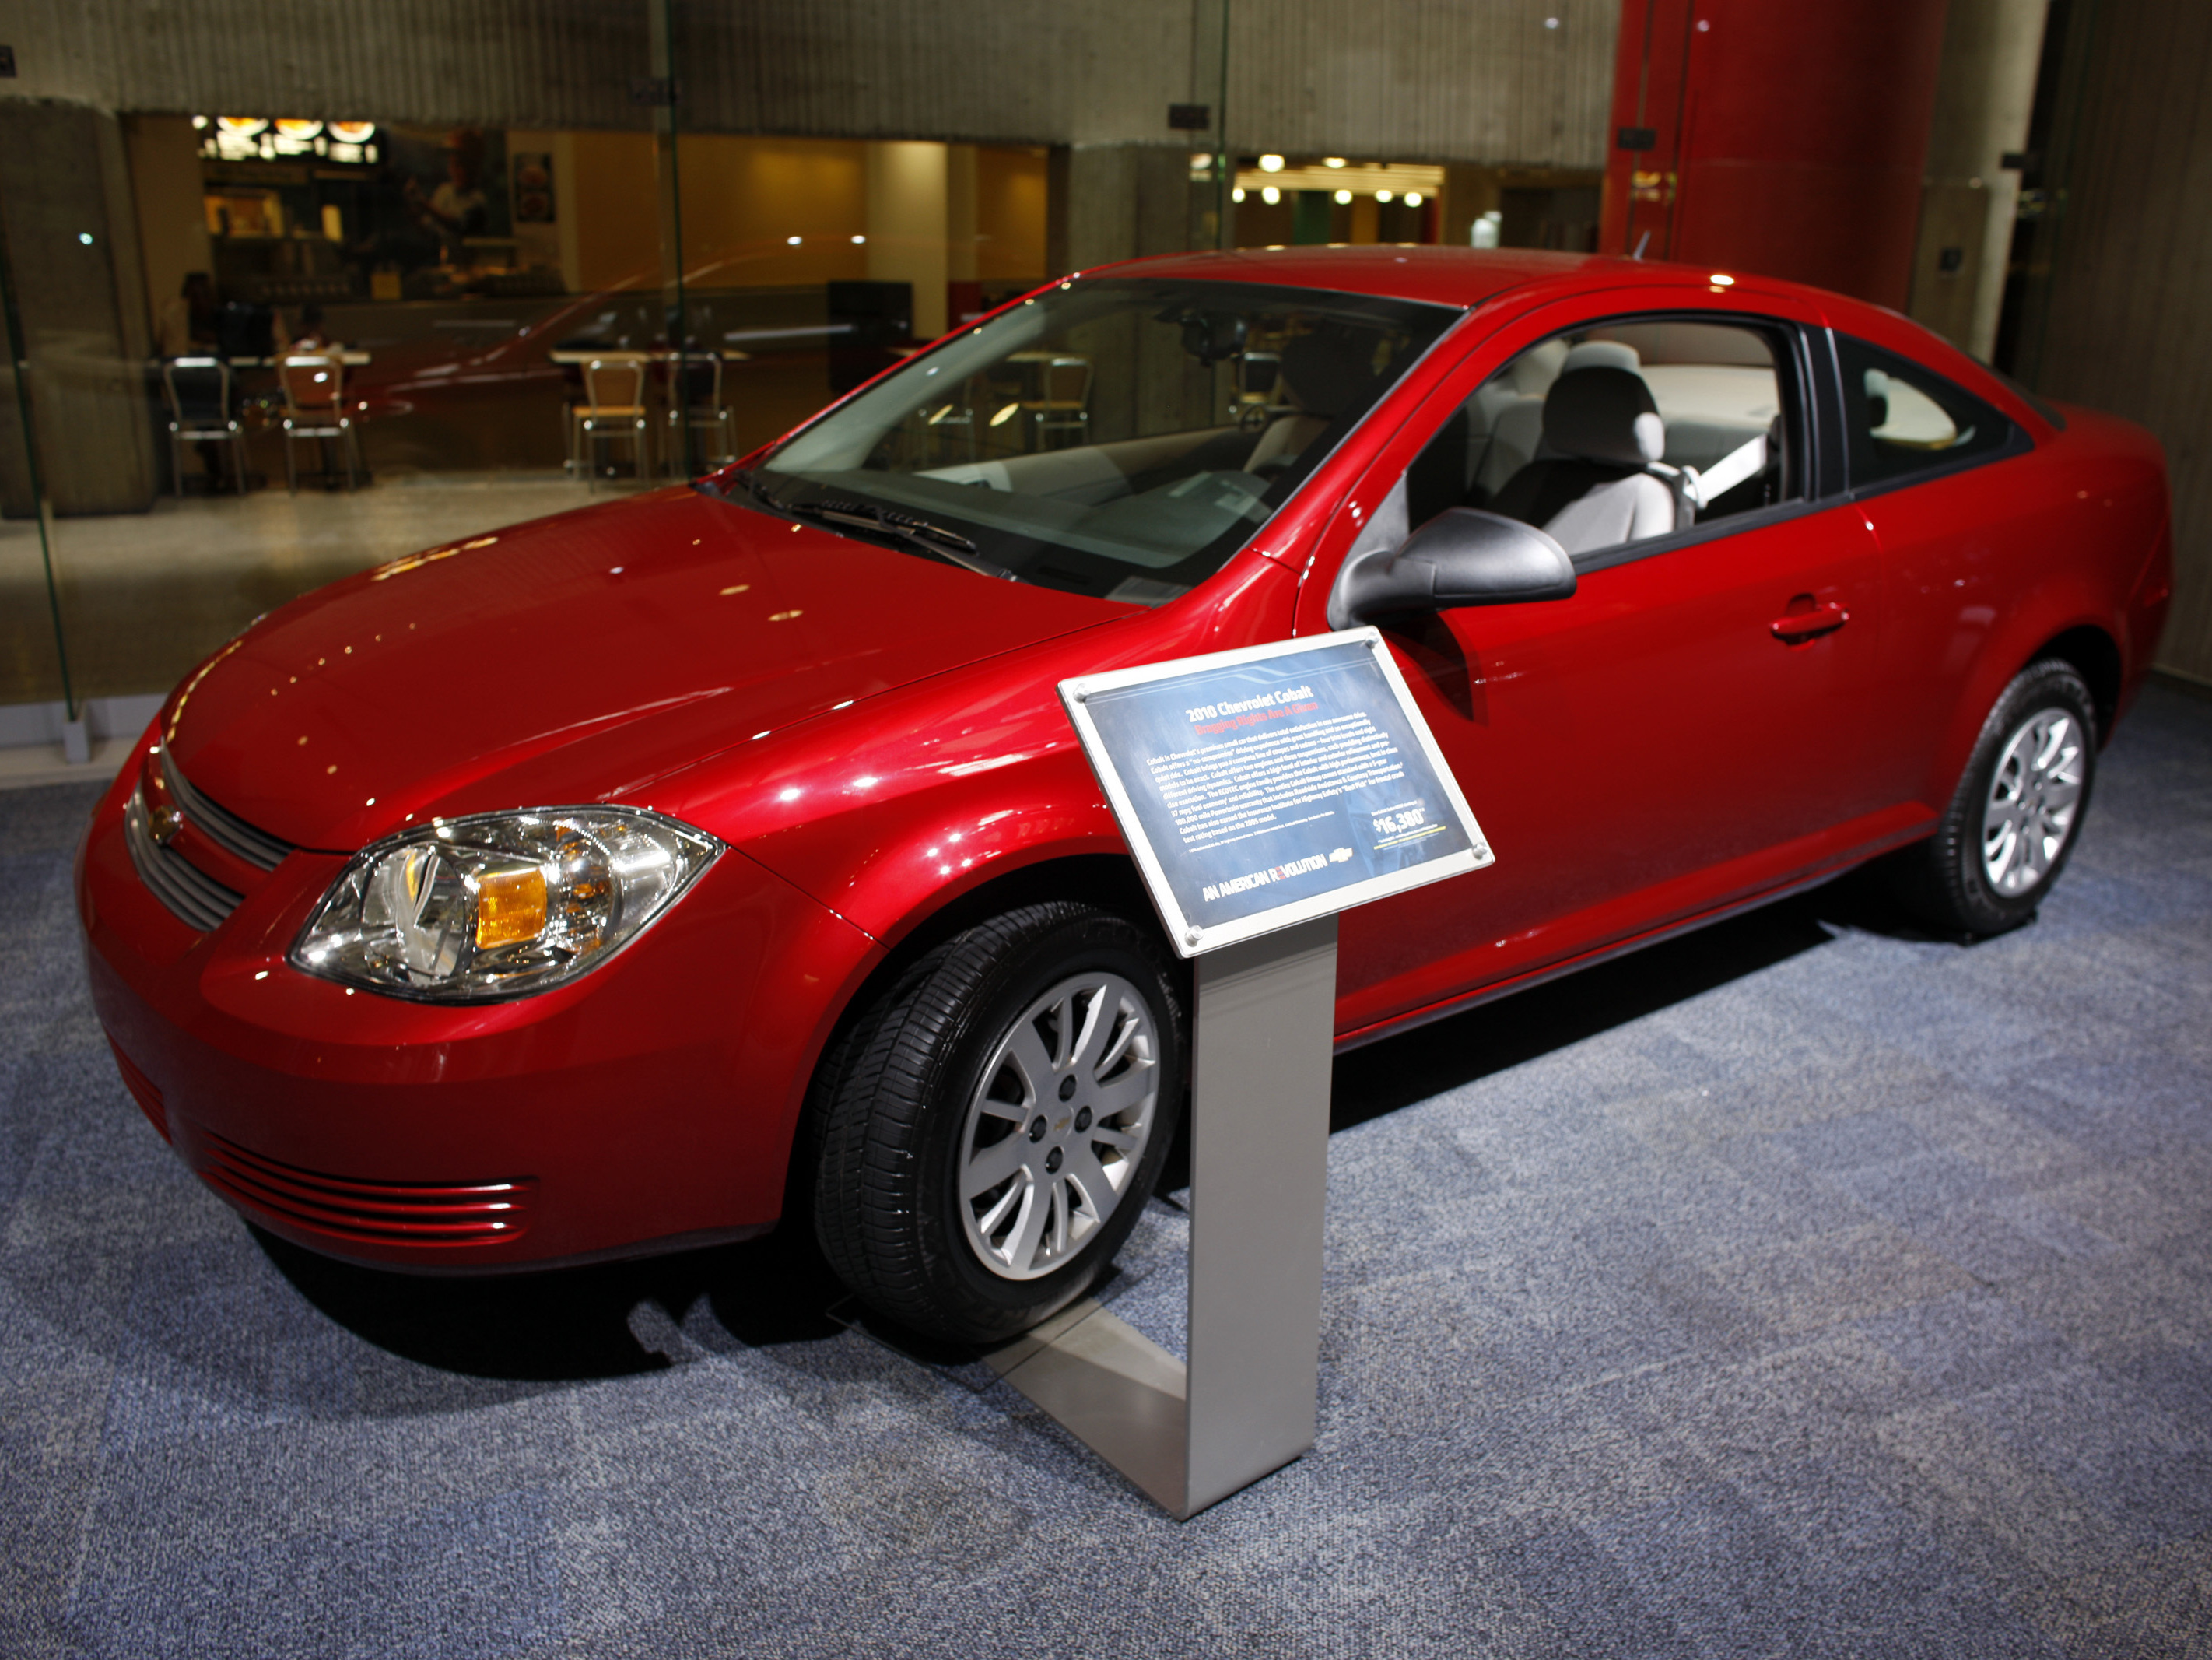 A 2010 Chevrolet Cobalt Coupe Sits On Display At General Motors Headquarters In Detroit 2009 Image David Zalubowski Ap